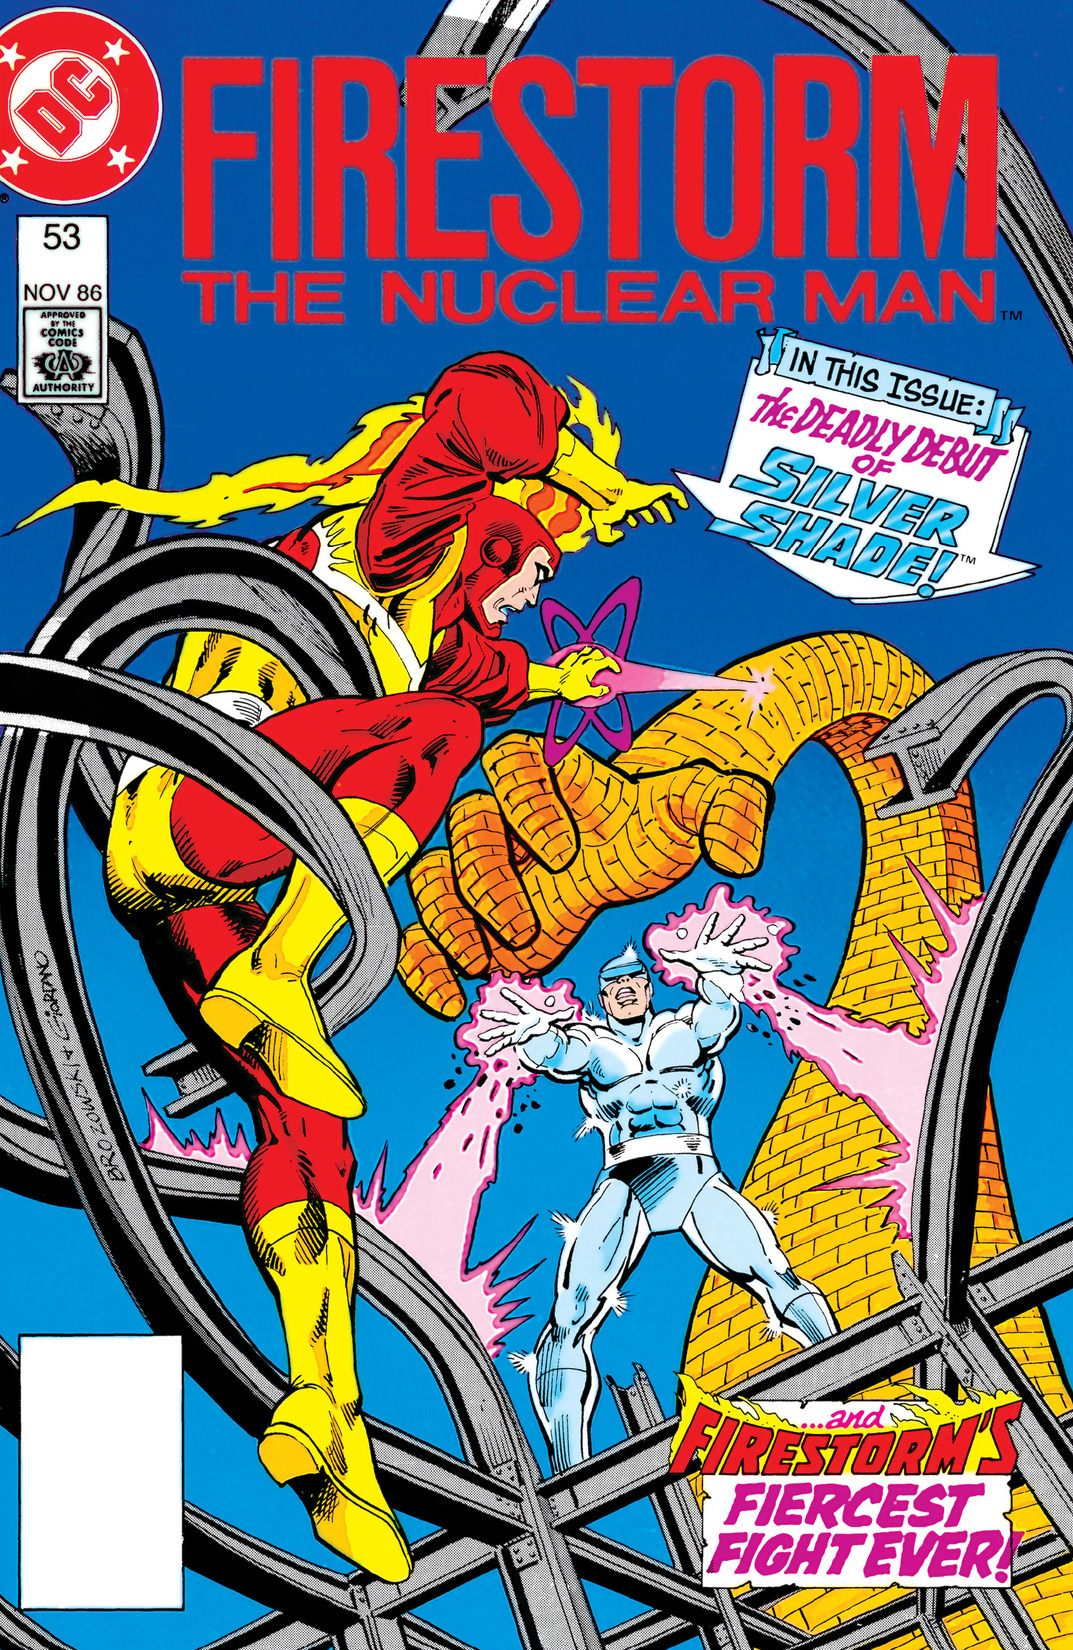 Fury of Firestorm #53 by Gerry Conway, Joe Brozowski and Steve Mitchell; cover by Joe Brozowski and Dick Giordano